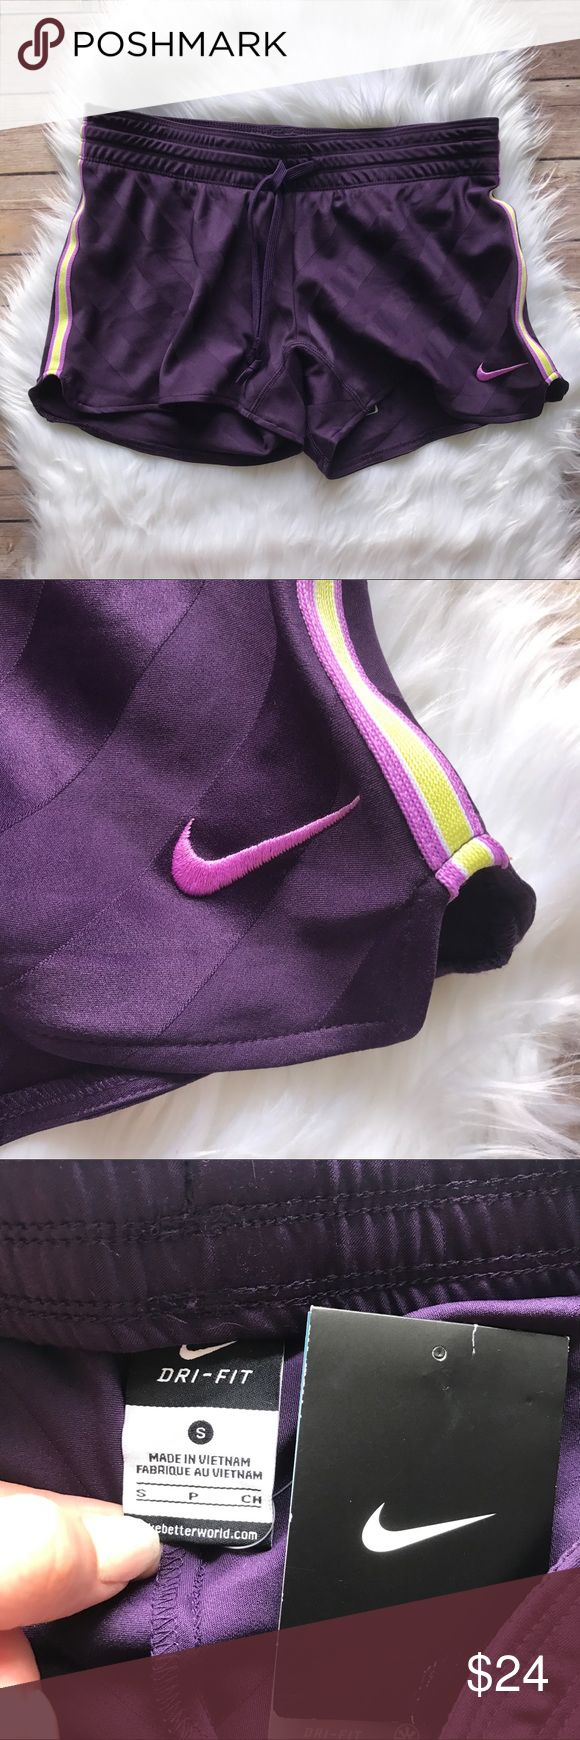 "Nike Dri-Fit Training Shorts Size Small NWT Purple running/training shorts by Nike. Subtle striped short with yellow racing stripe on edge. Pink Nike logo embroidered on bottom leg. 3.5"" inseam. NWT from a smoke free home!  ⭐️no trades⭐️ ⭐️I'm open to offers and I ALWAYS send a counteroffer⭐️ ⭐️bundle and save 10% off two or more items⭐️ Nike Shorts"